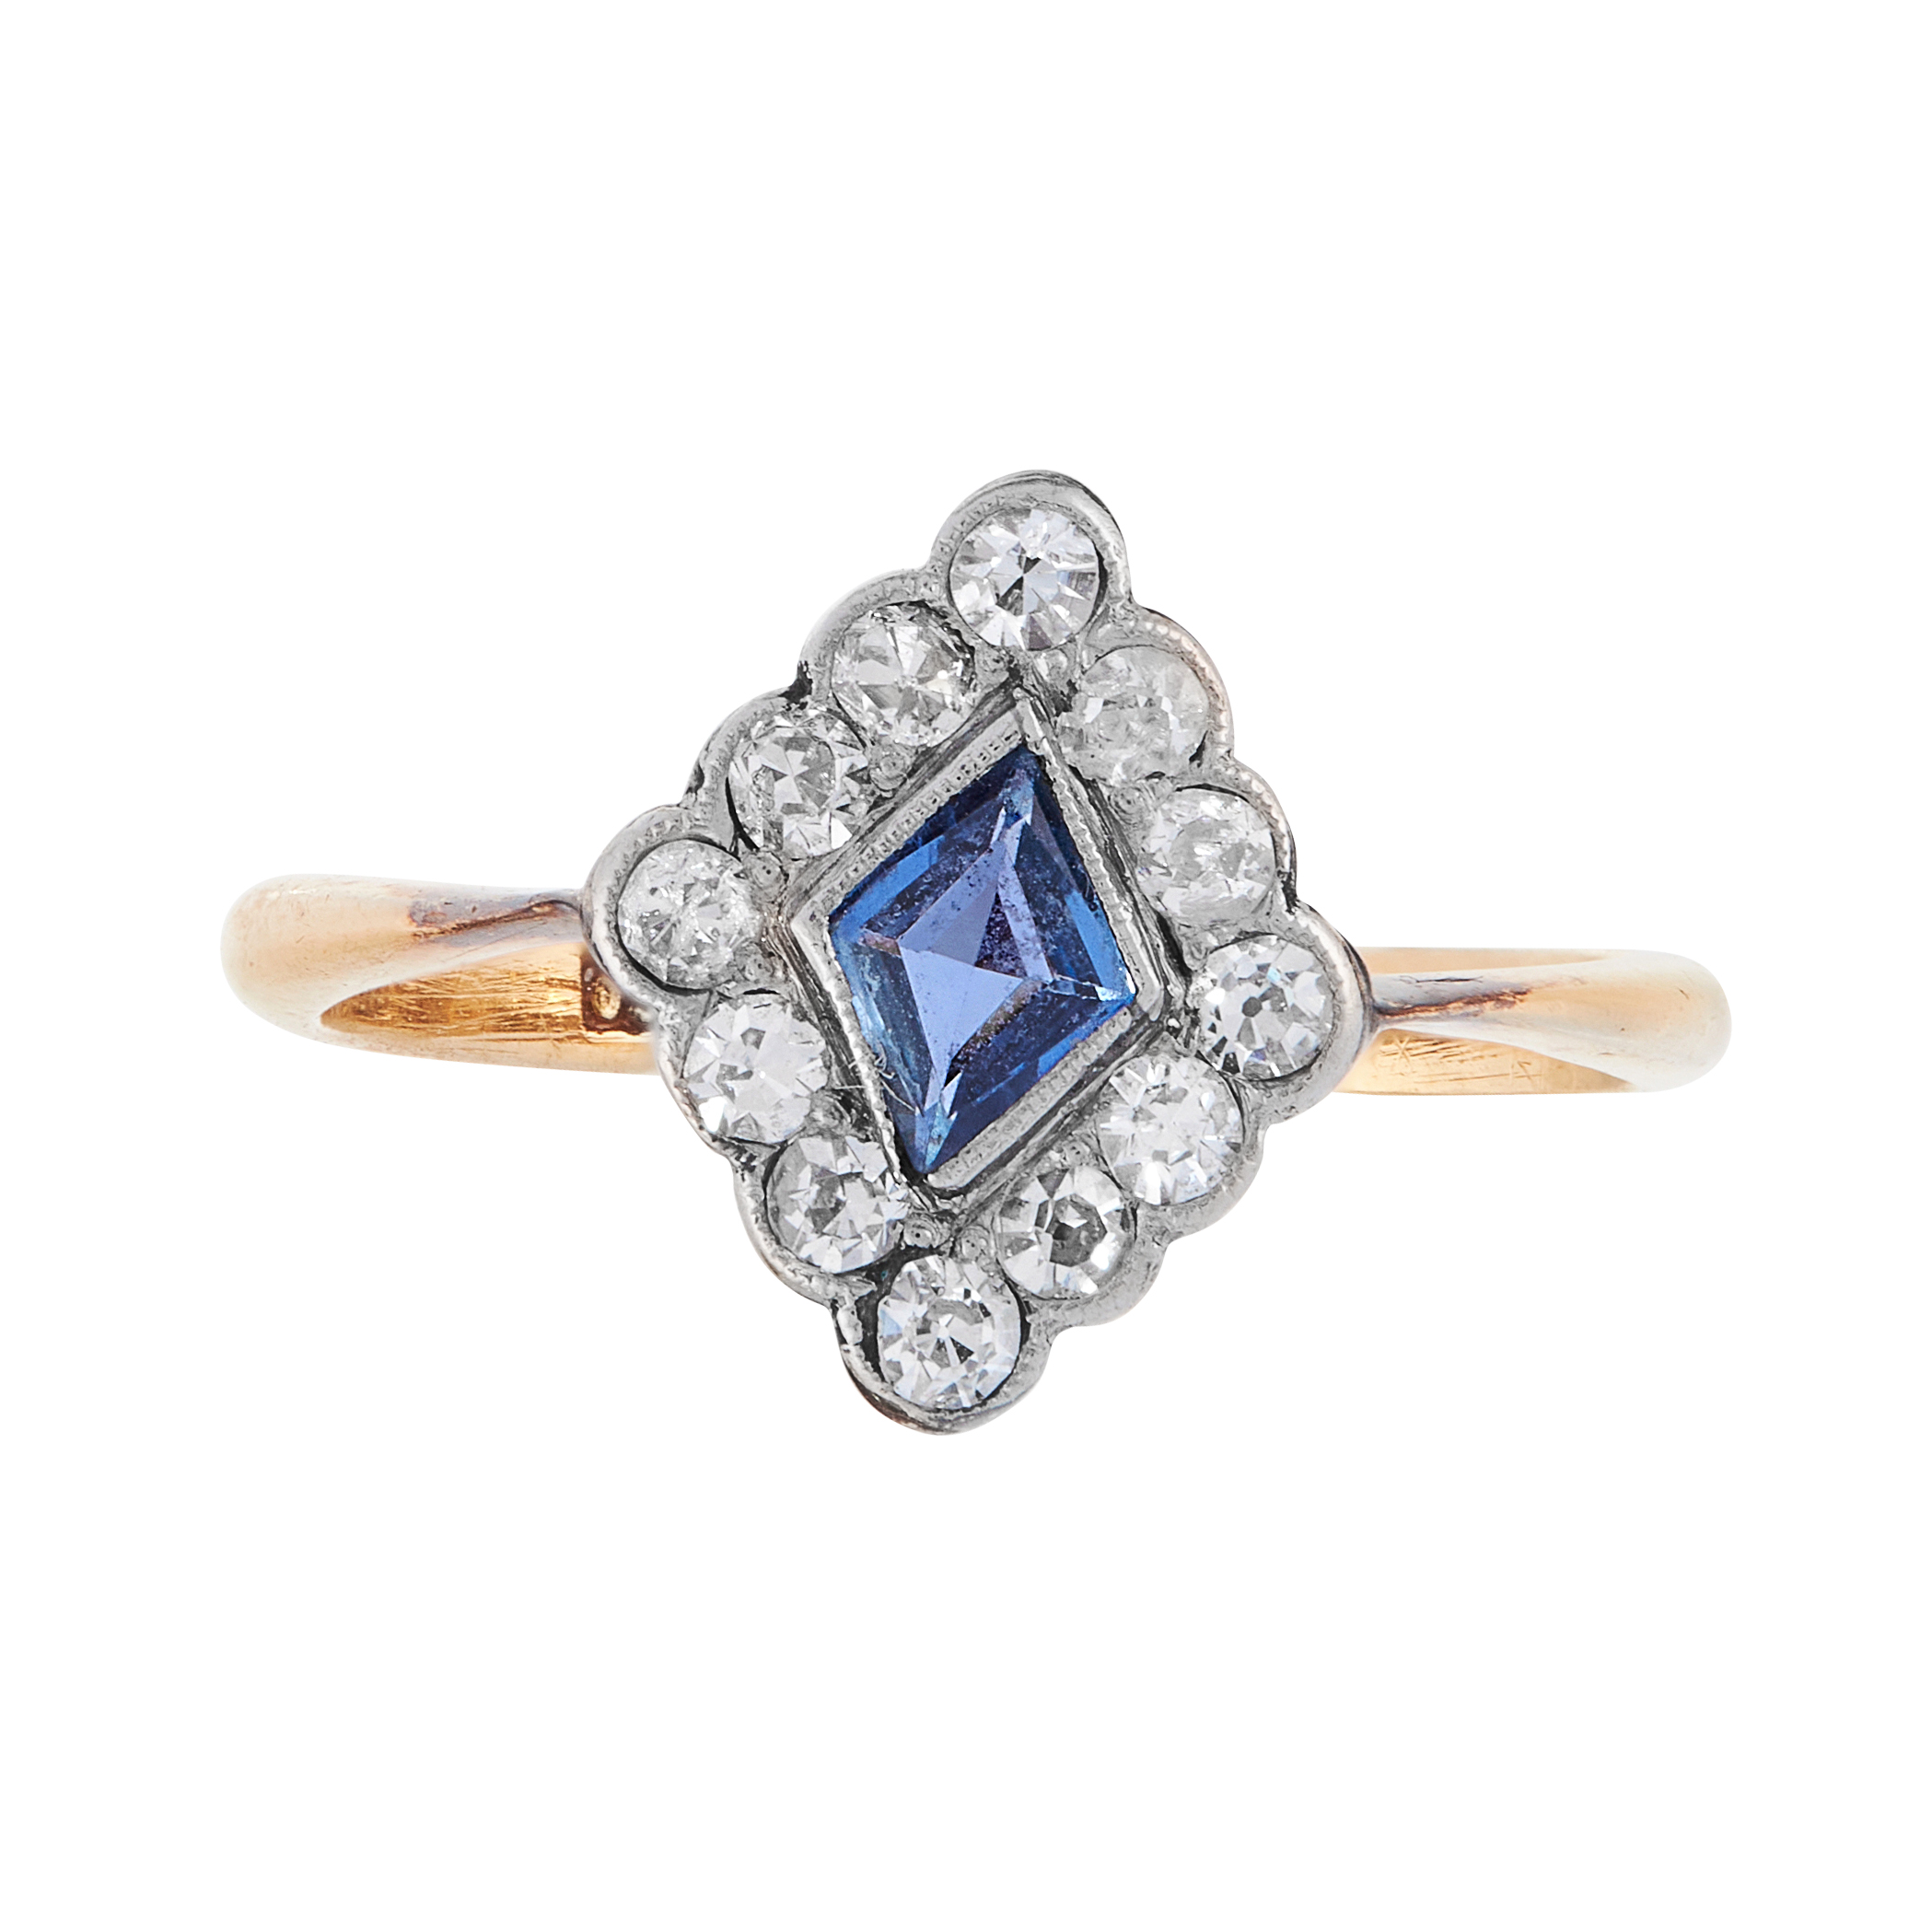 AN ART DECO SAPPHIRE AND DIAMOND DRESS RING, EARLY 20TH CENTURY in 18ct yellow gold, set with a